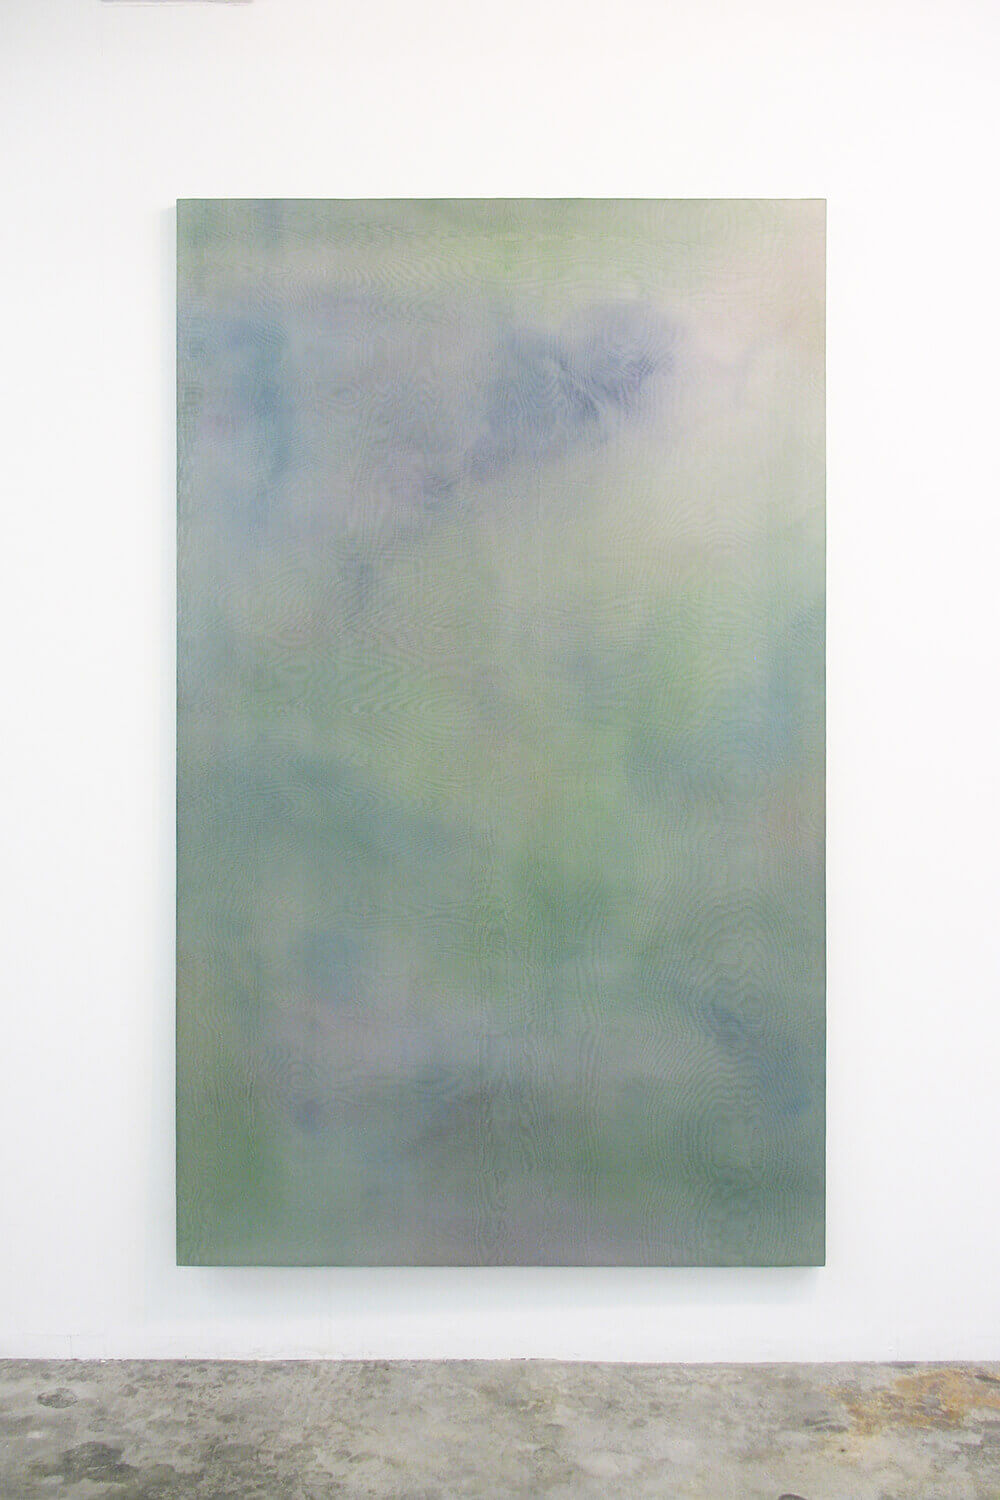 Untitled<br> Acrylic, glass organdy, stainless steel, panel 200 x 12 cm 2012<br> VOCA出展作